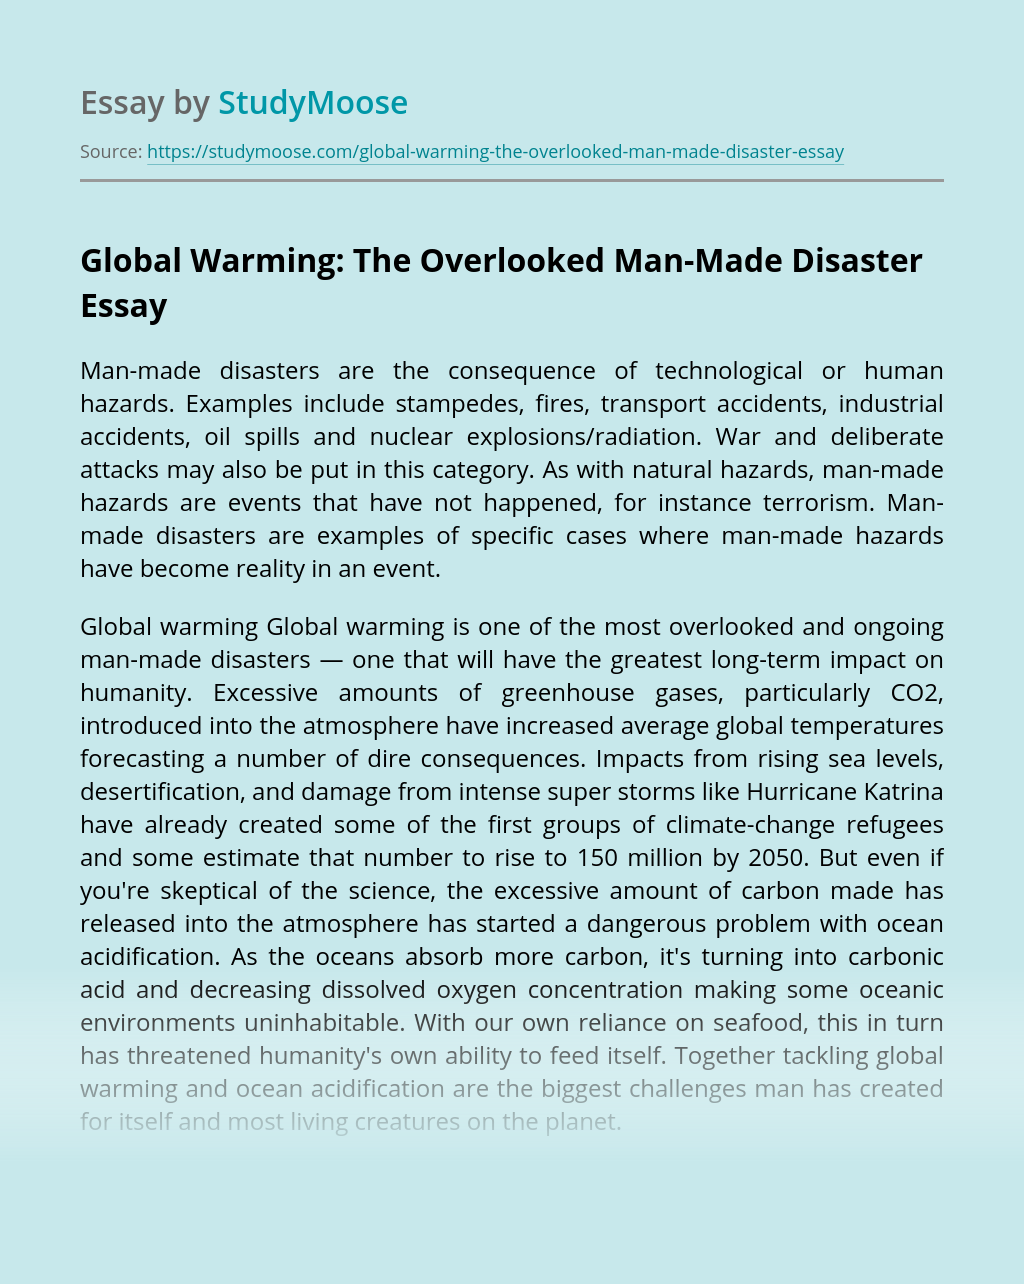 Global Warming: The Overlooked Man-Made Disaster